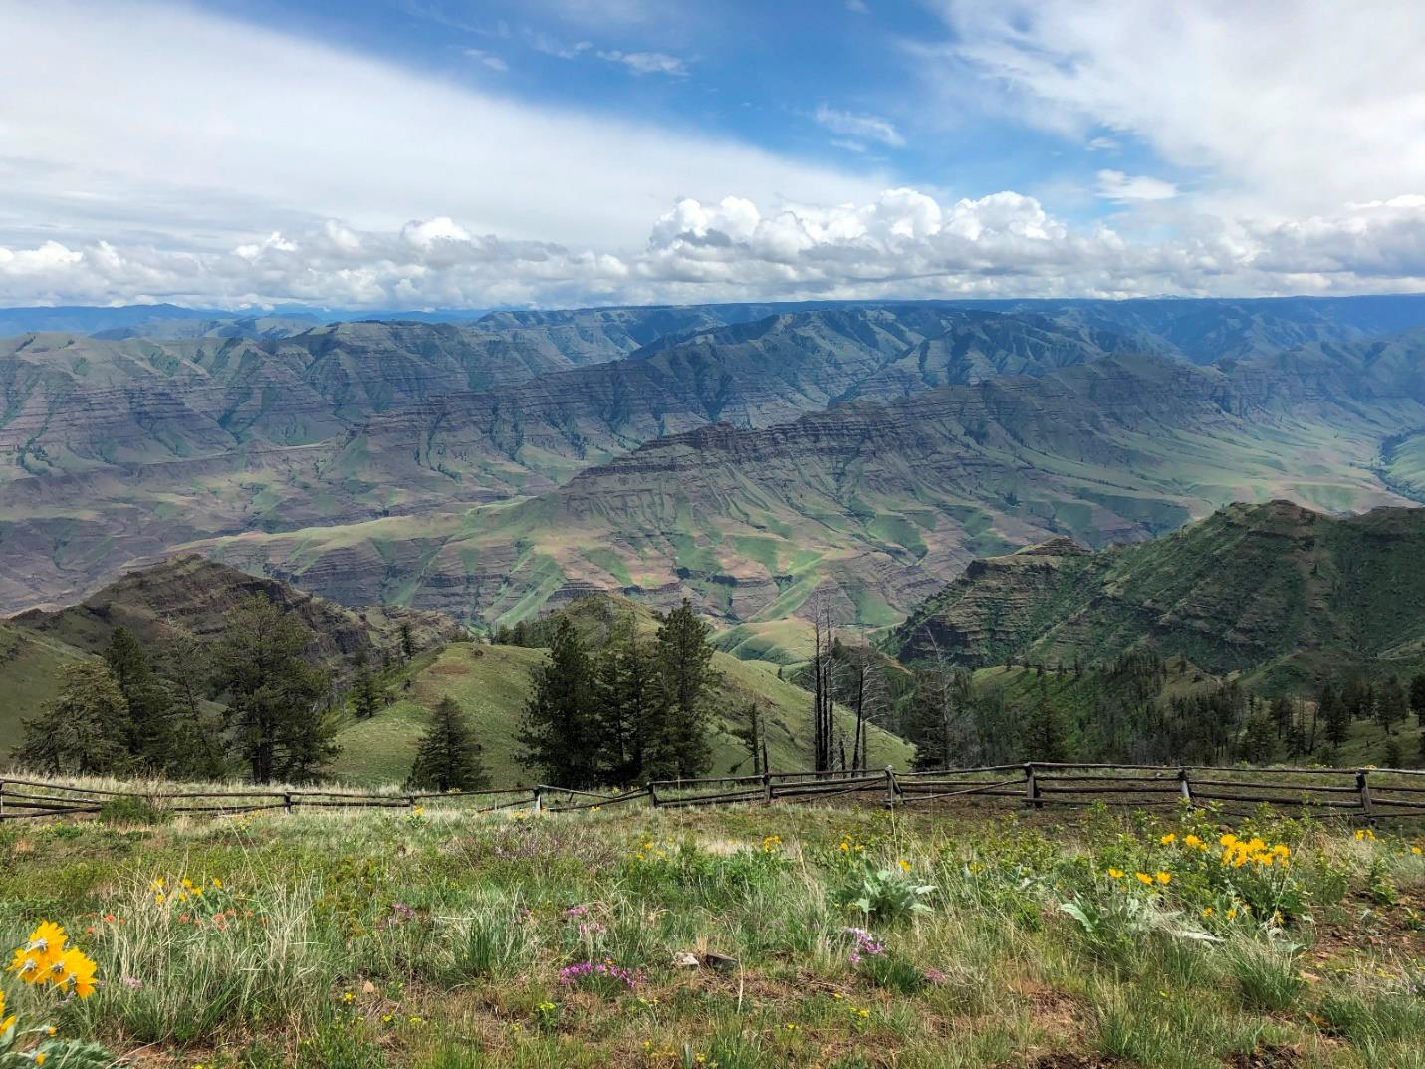 I'll begin this article with a picture of the Buckhorn Overlook taken on May 18, 2019, when Evelyn Bennett, Julia Lanning and I did the reconnaissance for the Wallowa trip.